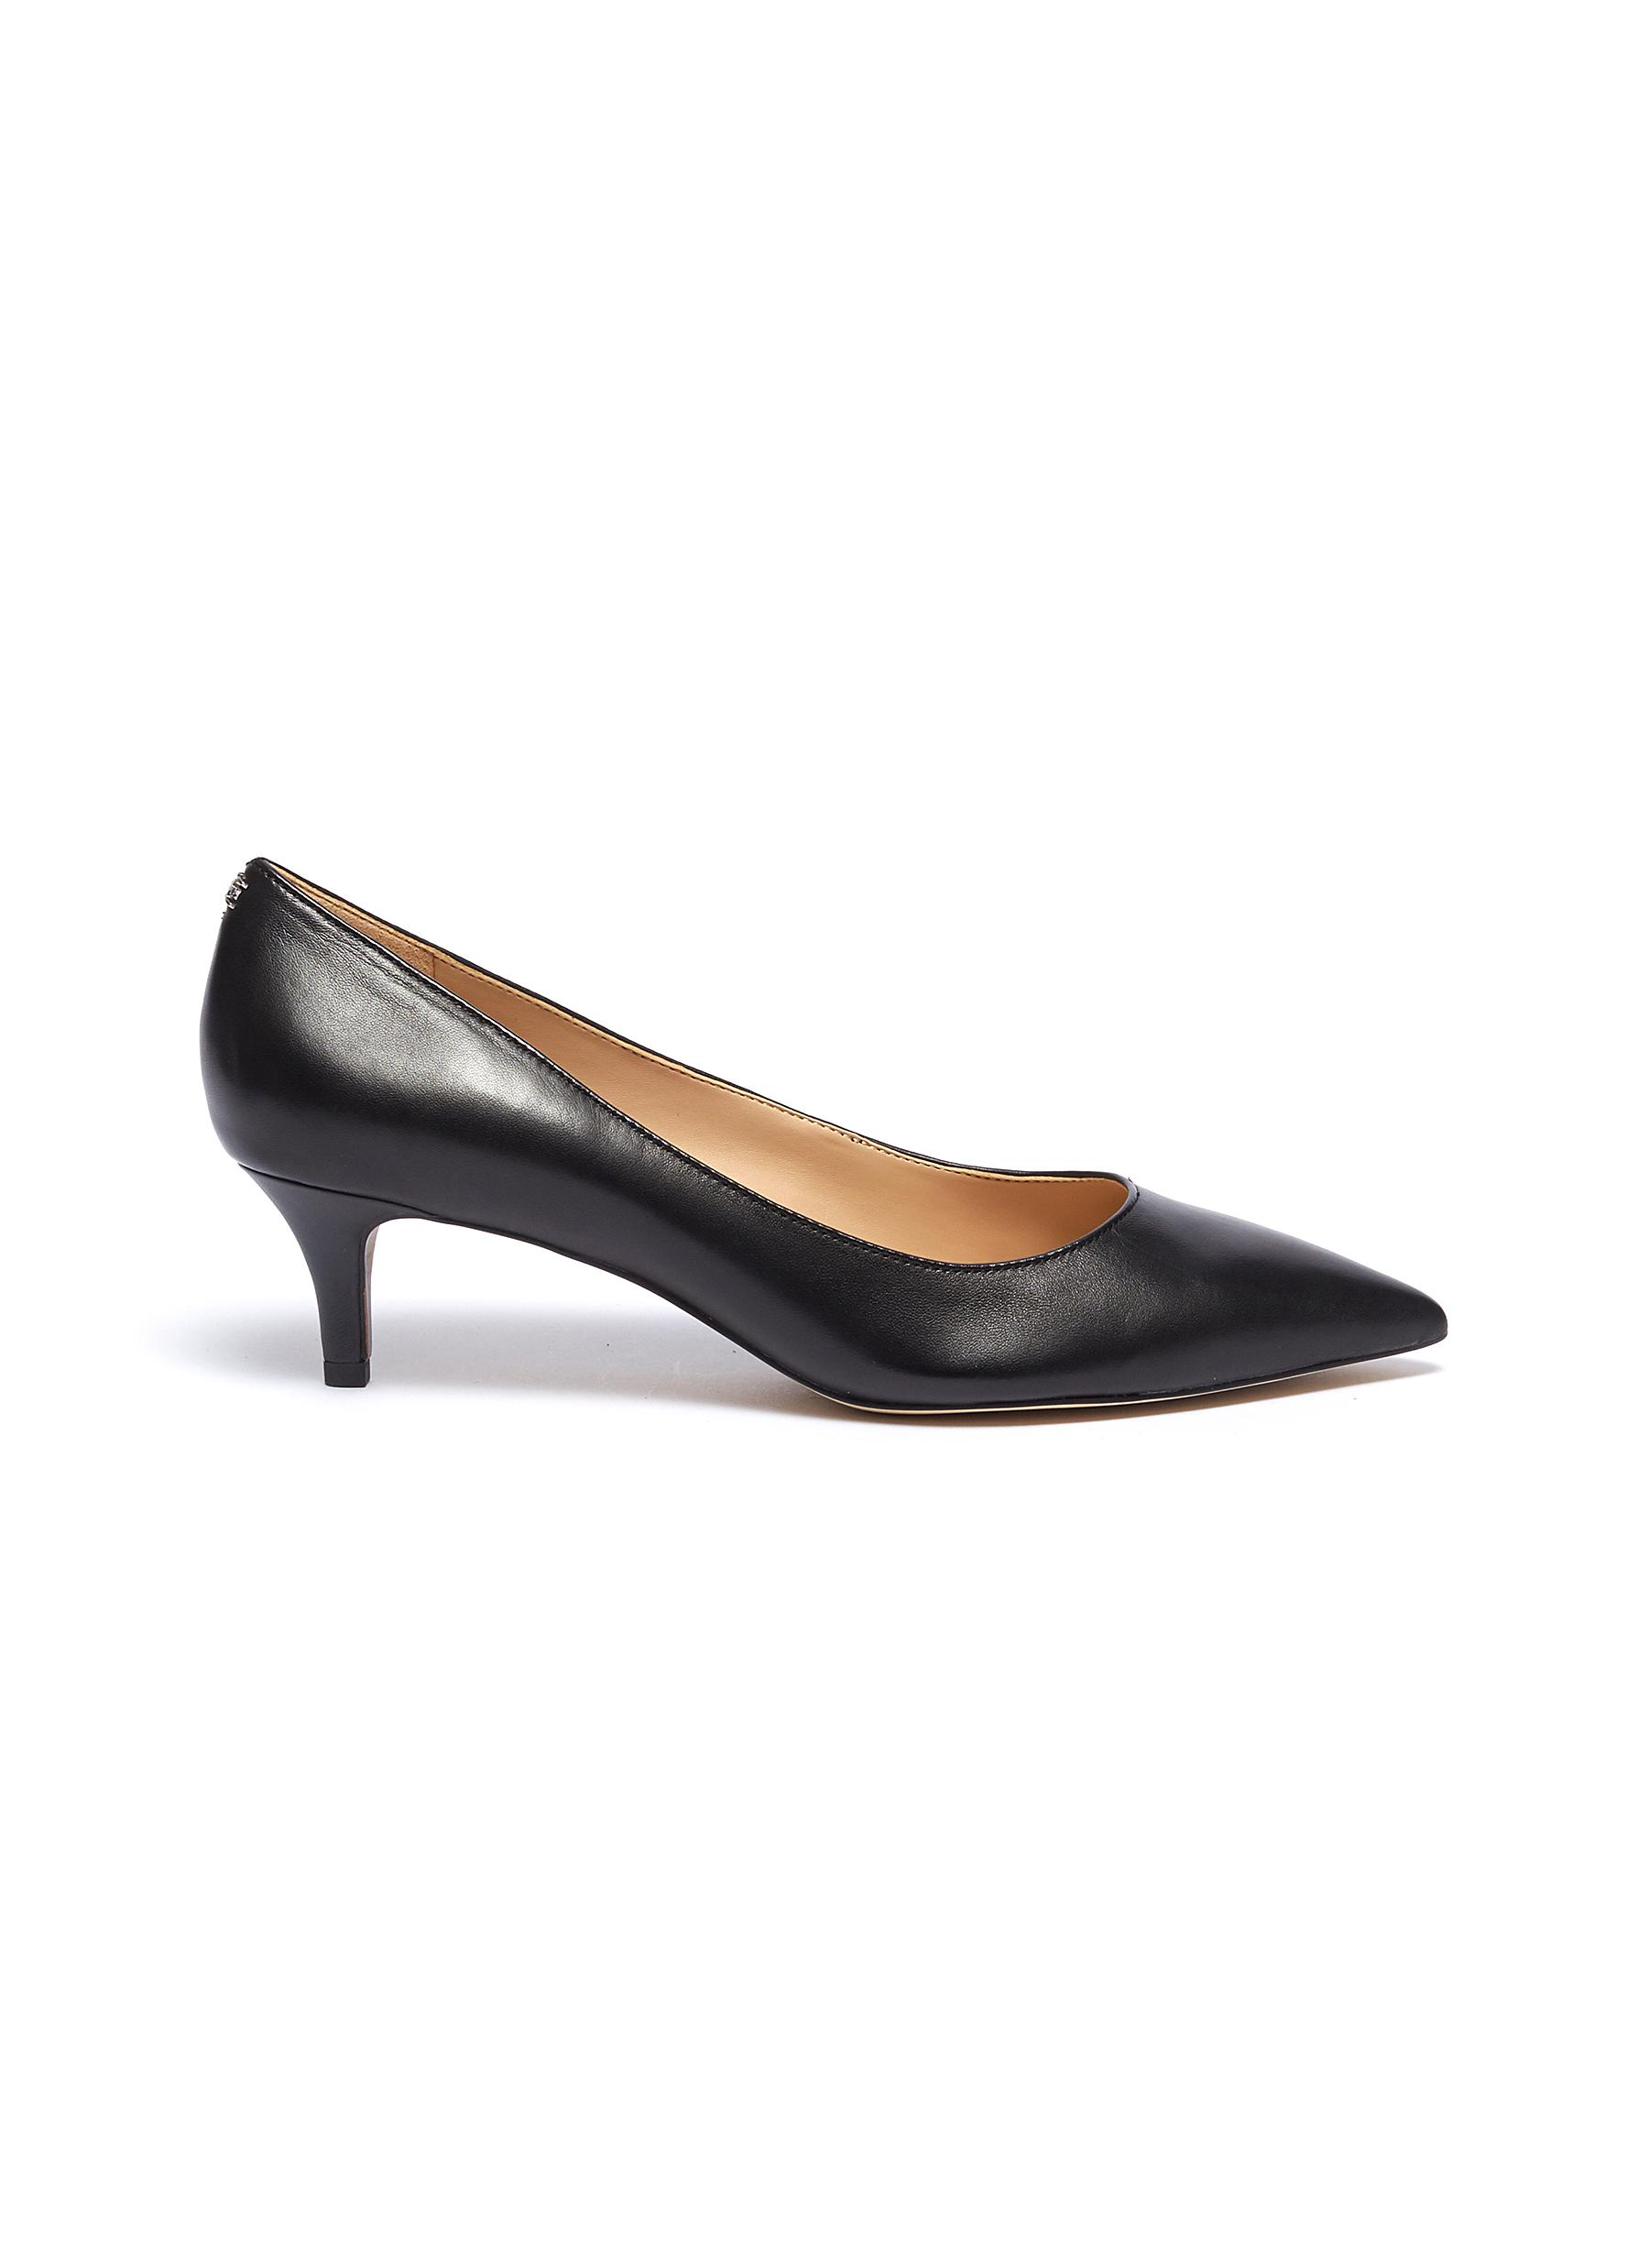 Dori leather pumps by Sam Edelman